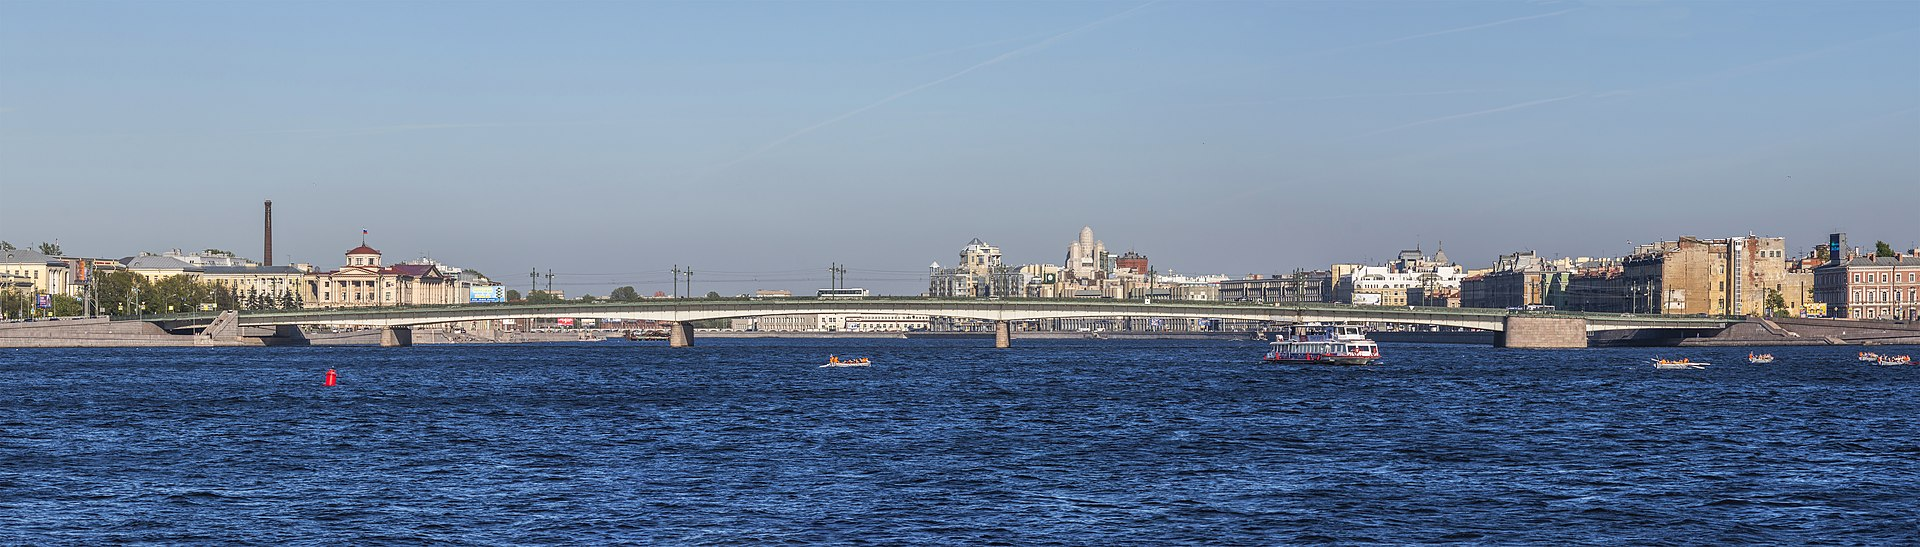 Liteyny Bridge Panorama.jpg